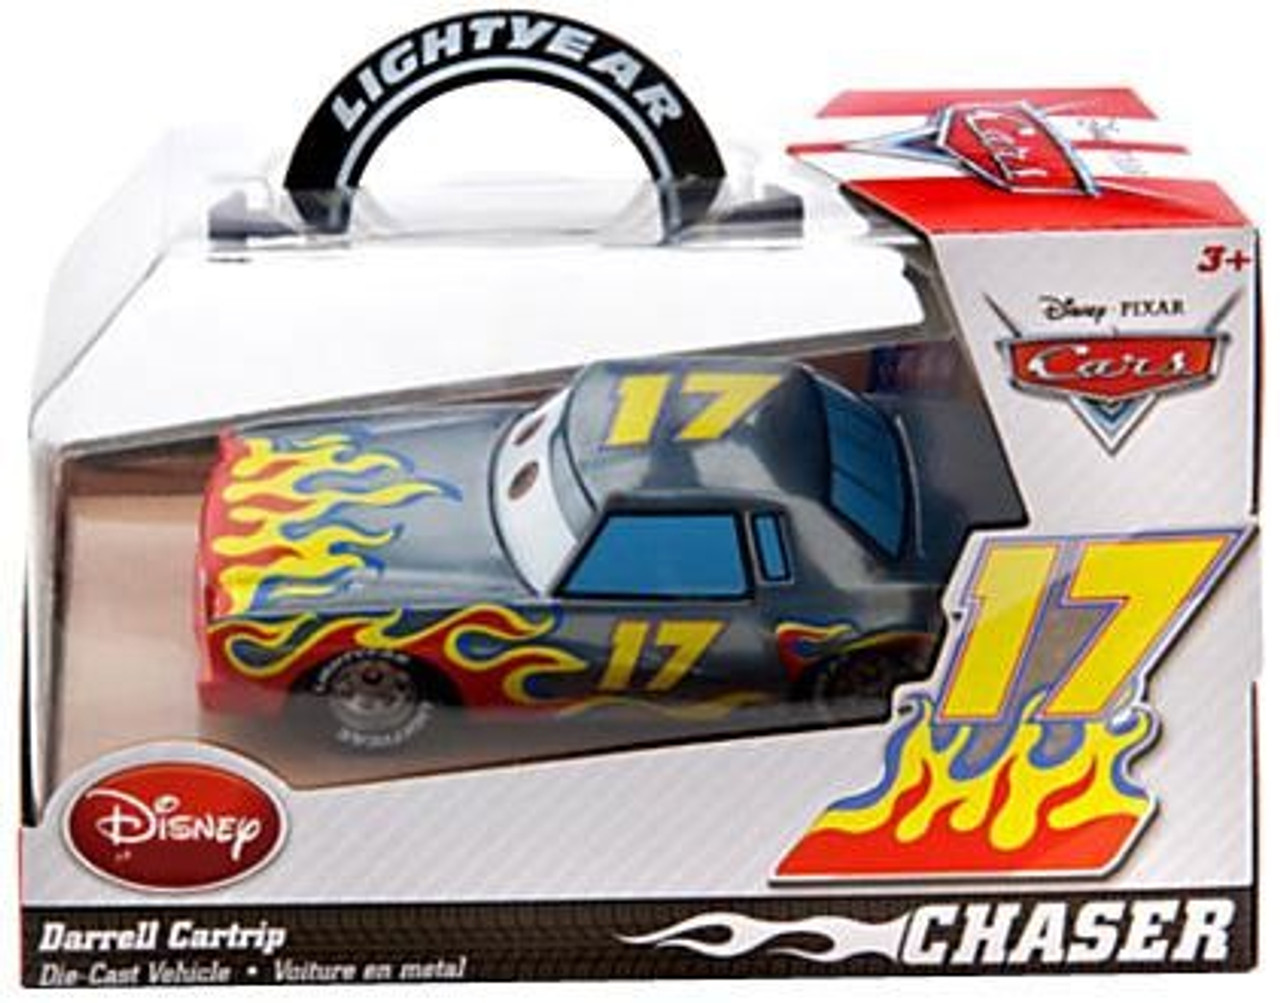 Disney Cars Darrell Cartrip Exclusive Diecast Car [Chase Edition]